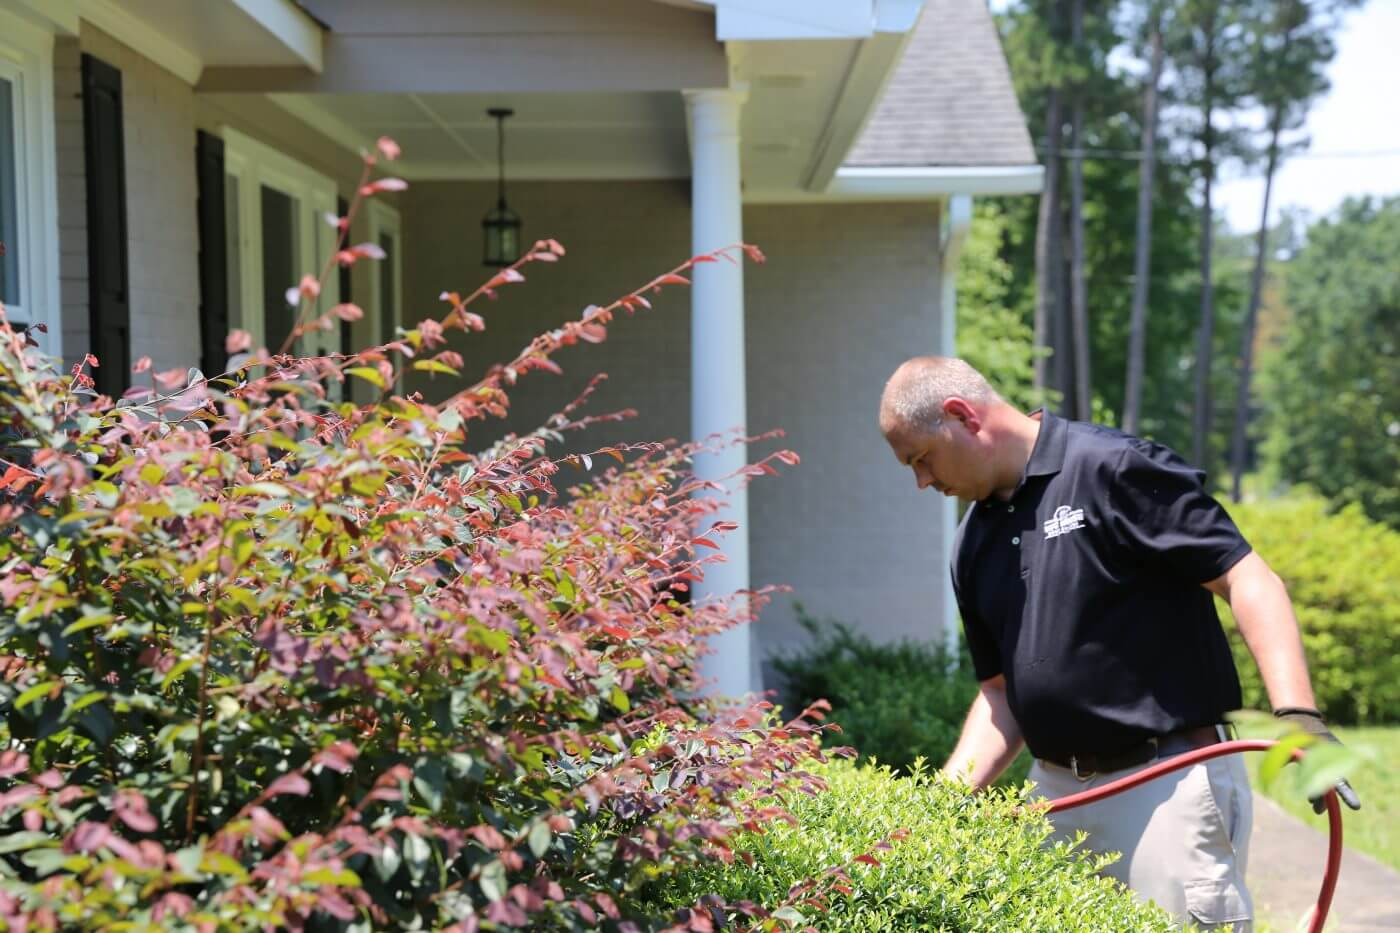 Bug House employee working on pest control services